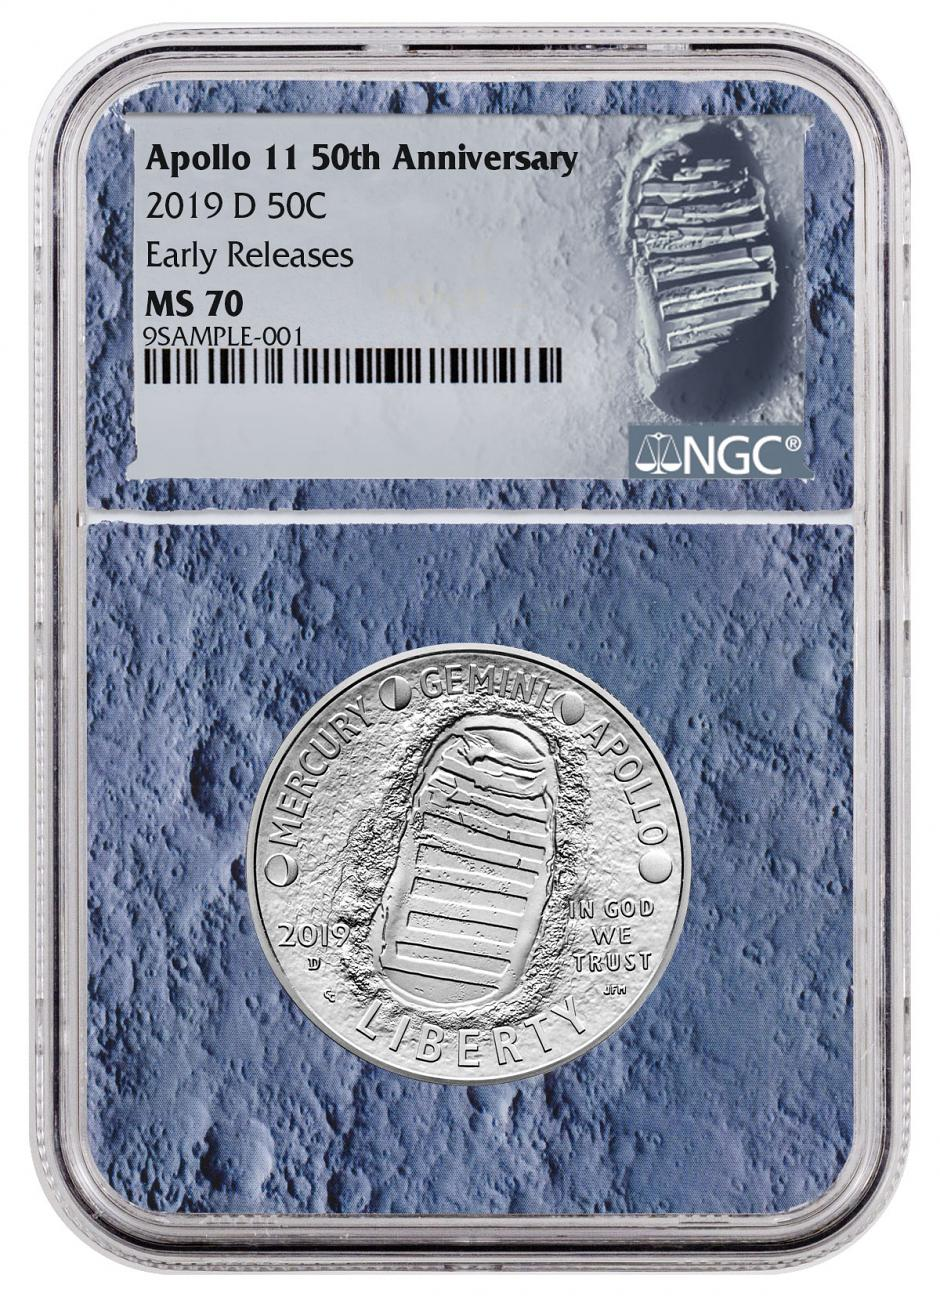 2019-D US Apollo 11 50th Anniversary Commemorative Clad Half Dollar Coin NGC MS70 ER With Apollo 11 Mission Patch Moon Core Holder